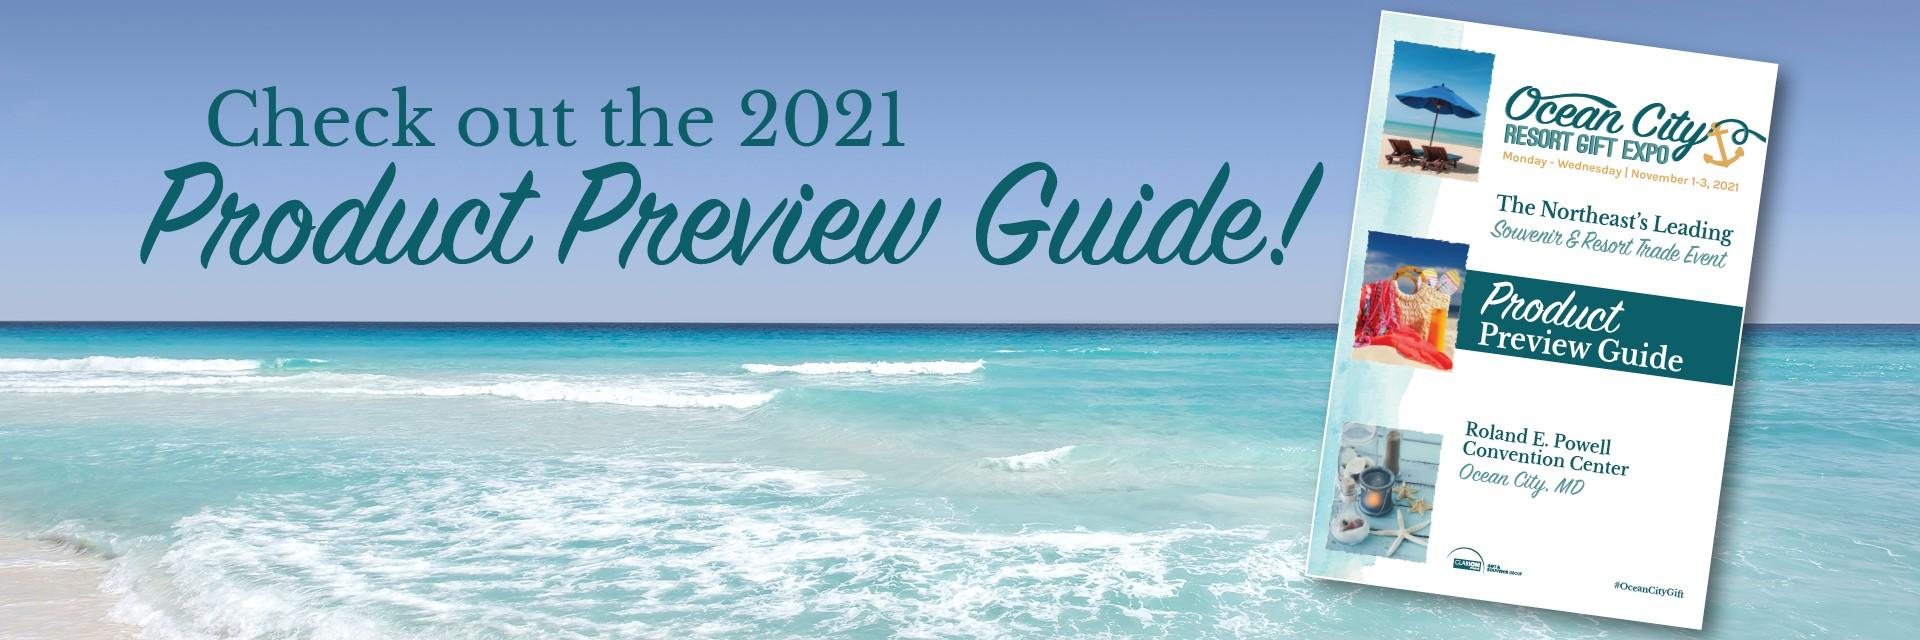 The 2021 Product Preview Guide is here!